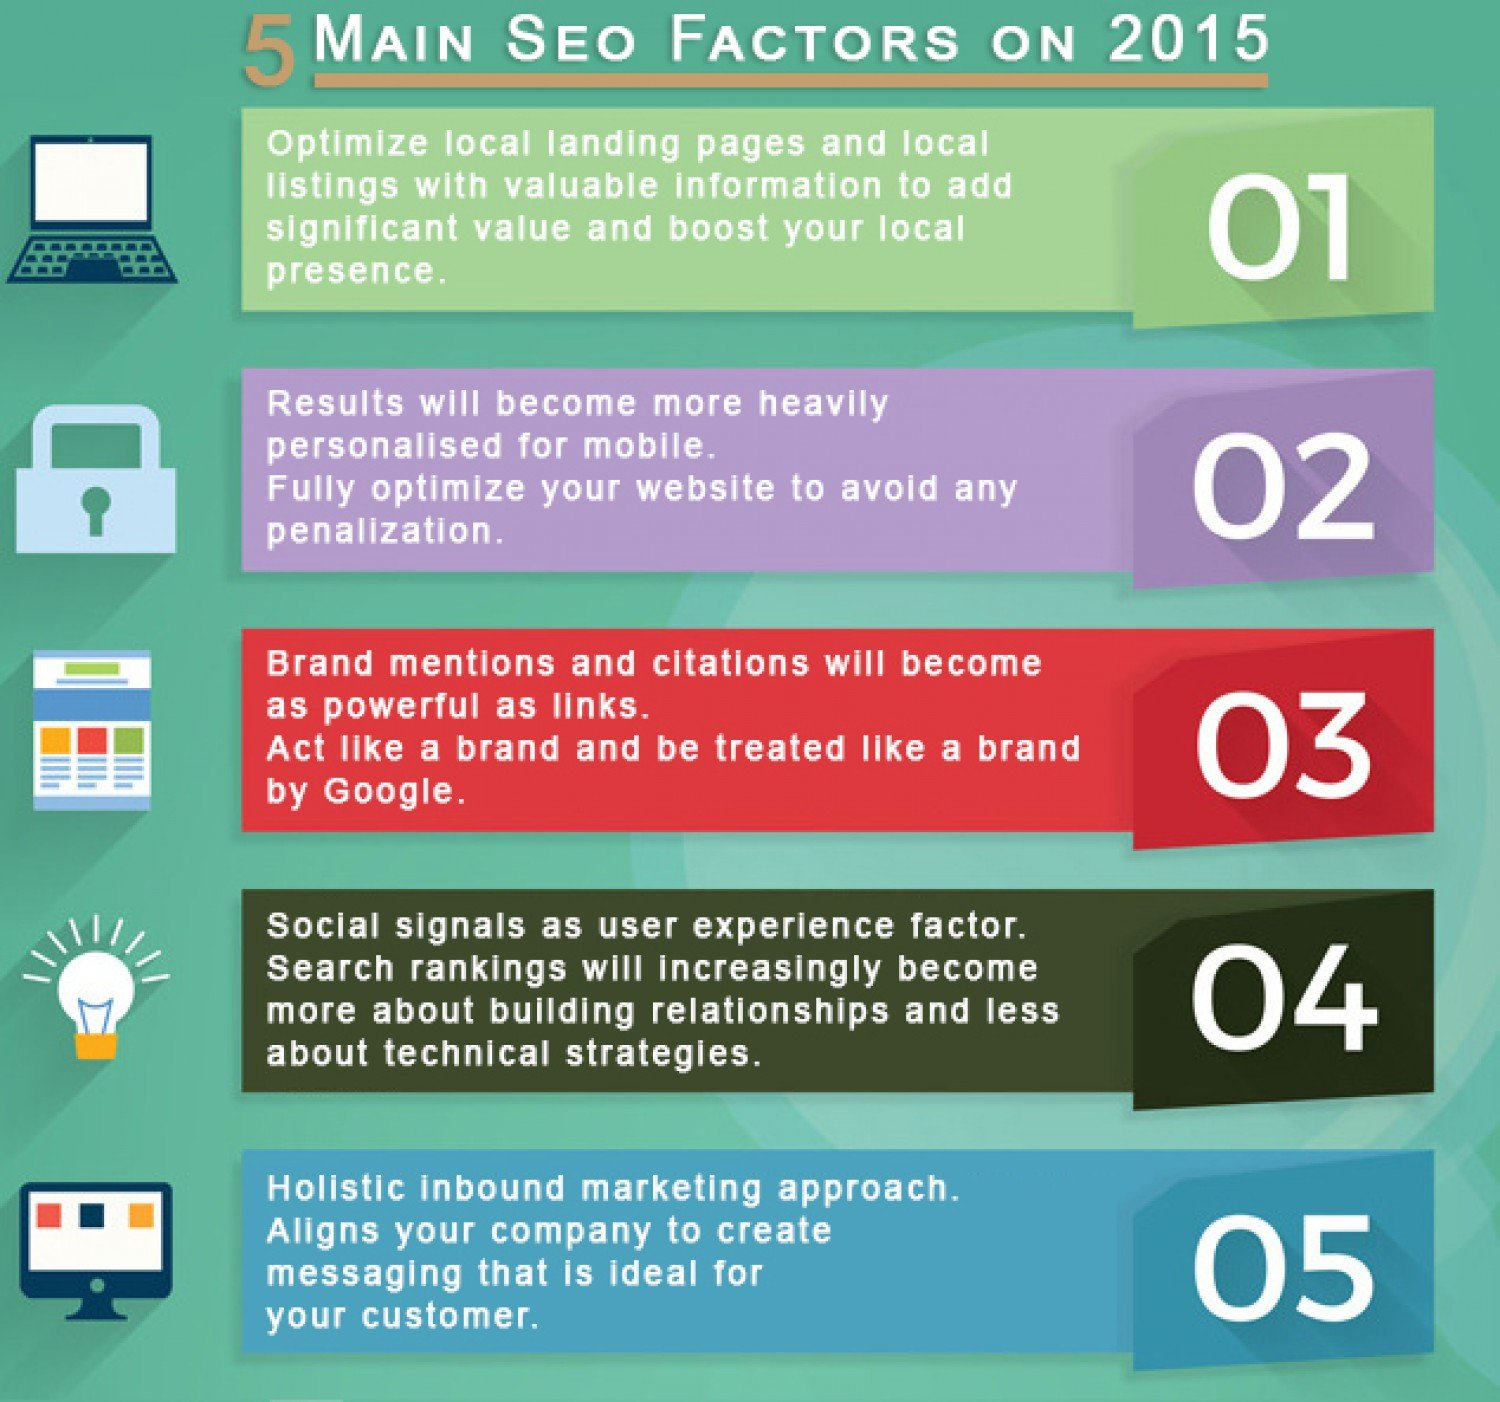 Should I get a higher SEO plan for my business?